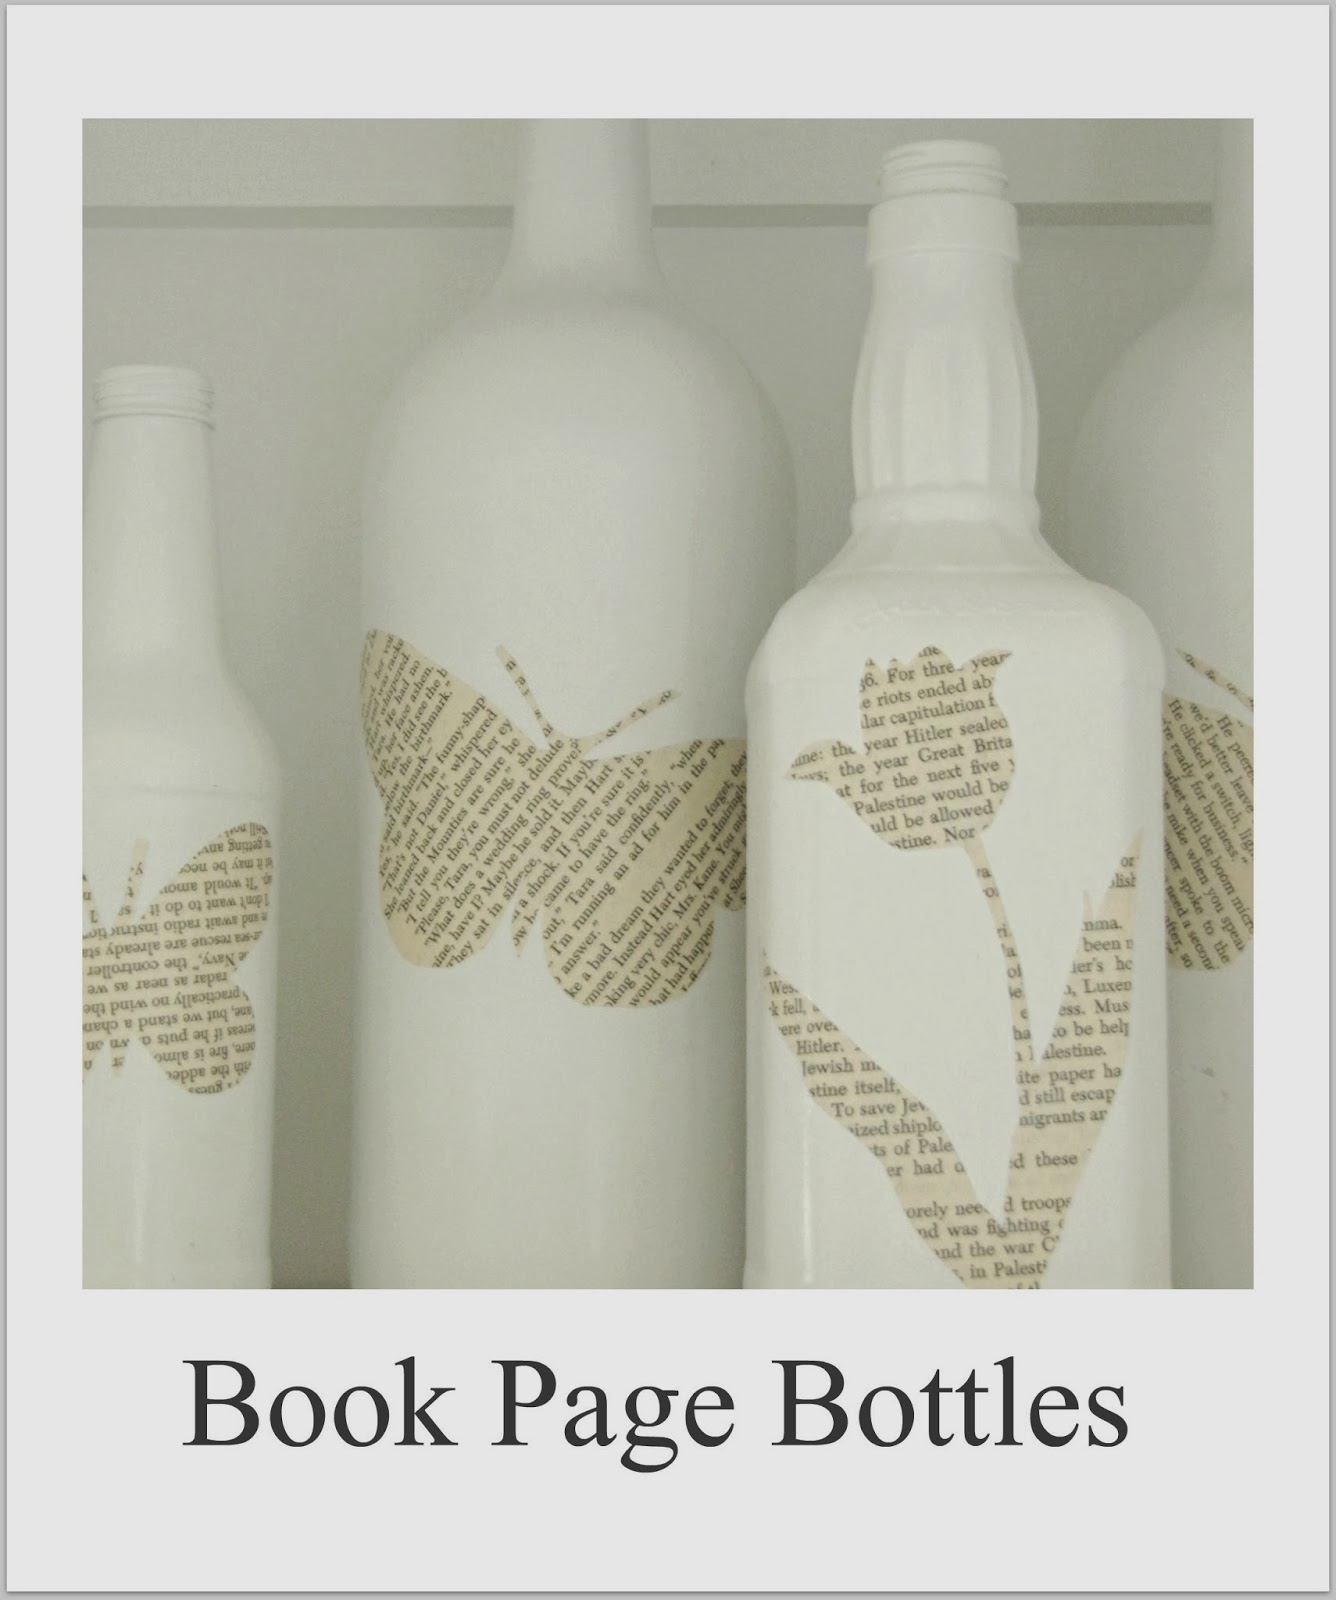 http://thewickerhouse.blogspot.com/2012/04/book-page-bottles.html